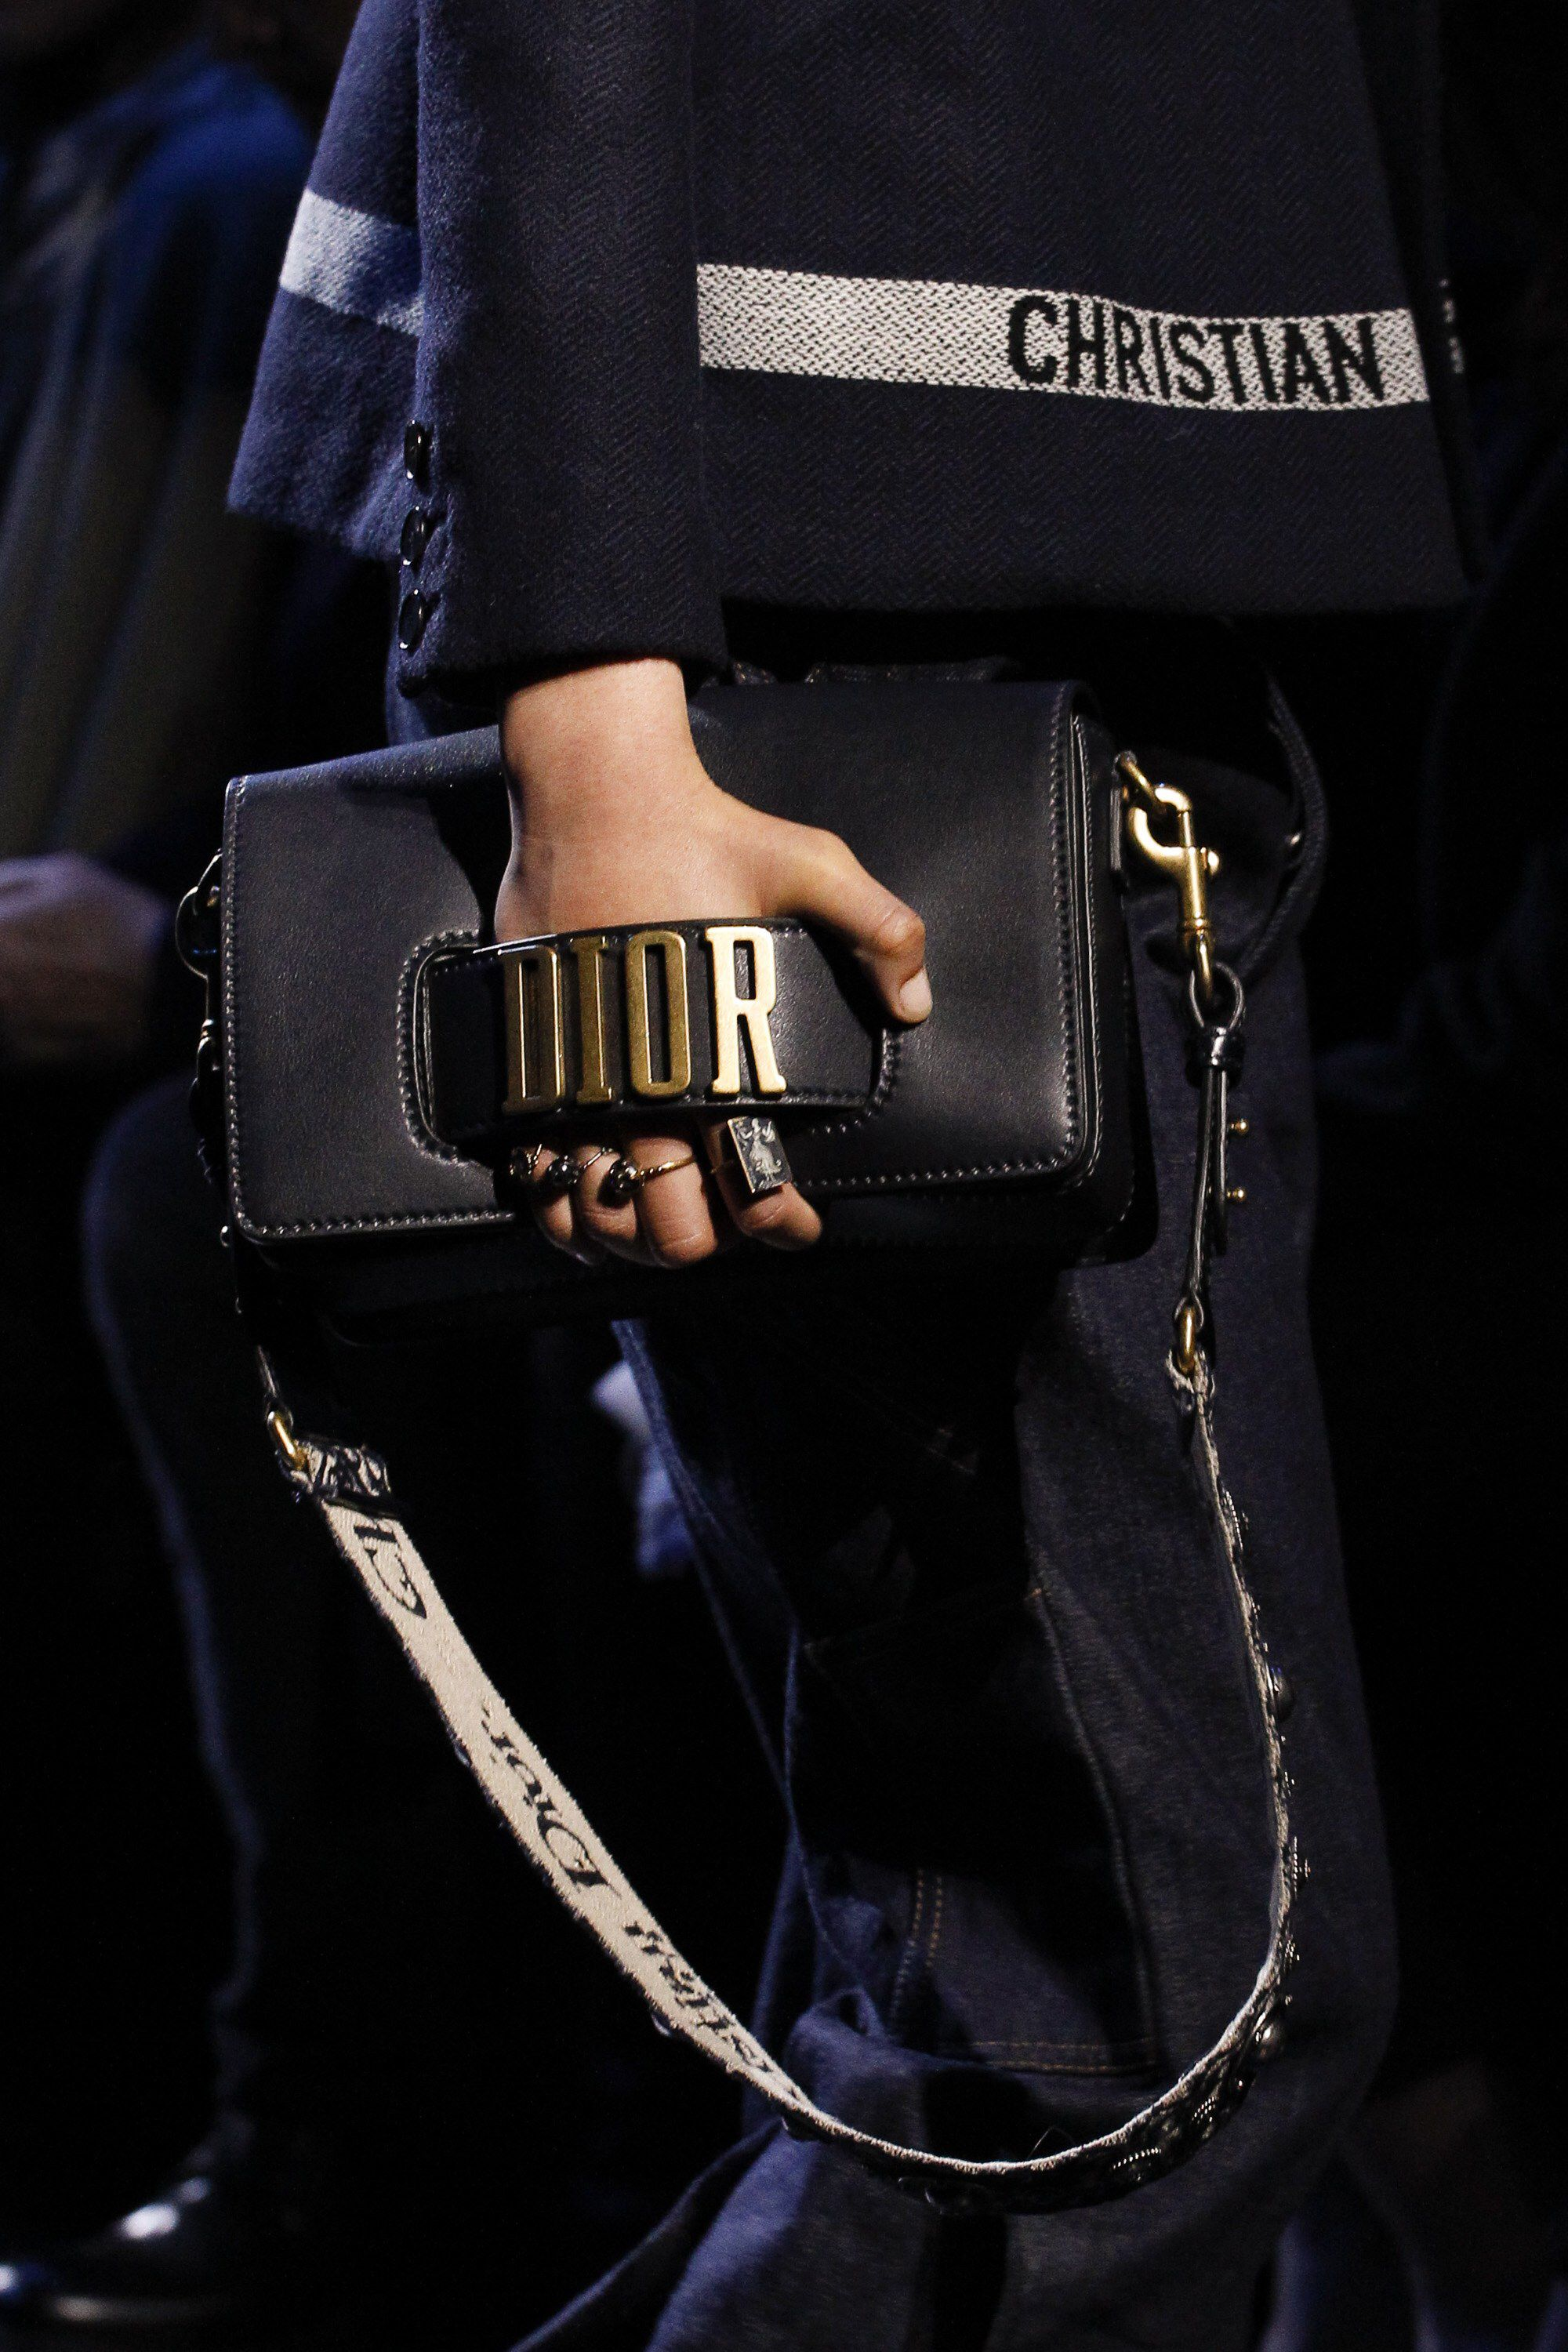 See detail photos for Christian Dior Fall 2017 Ready-to-Wear collection. 988d9ec4b4f3f